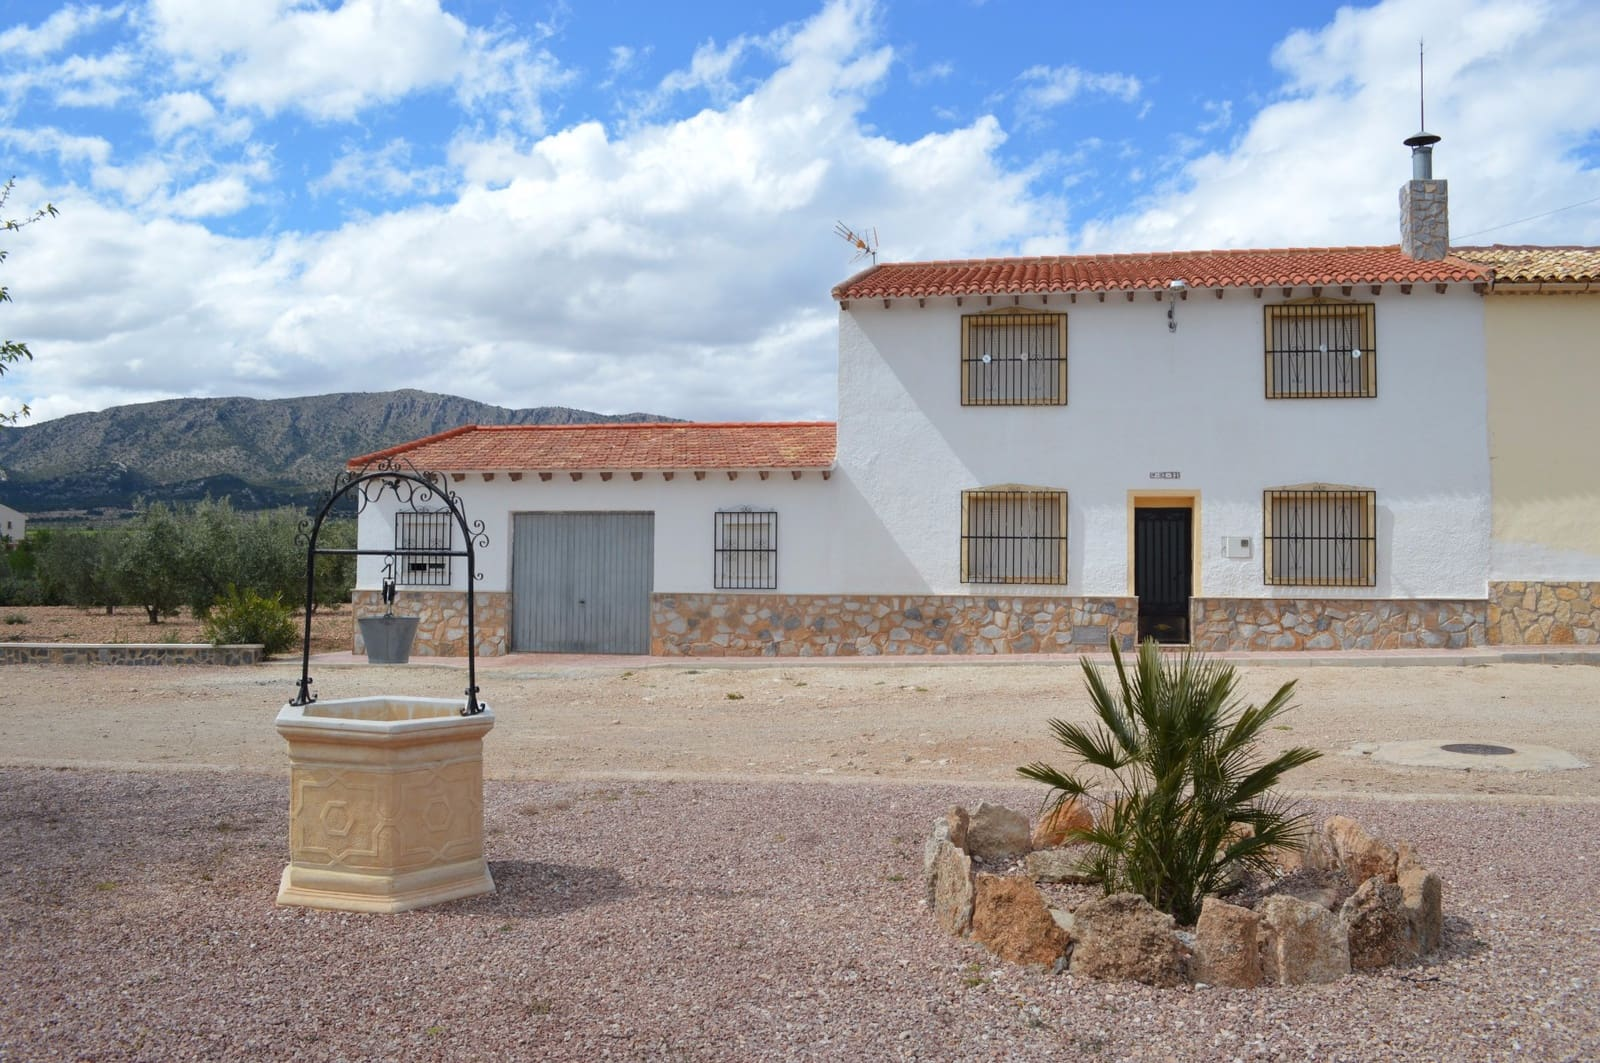 5 bedroom Finca/Country House for sale in Monovar / Monover with garage - € 137,000 (Ref: 3046984)